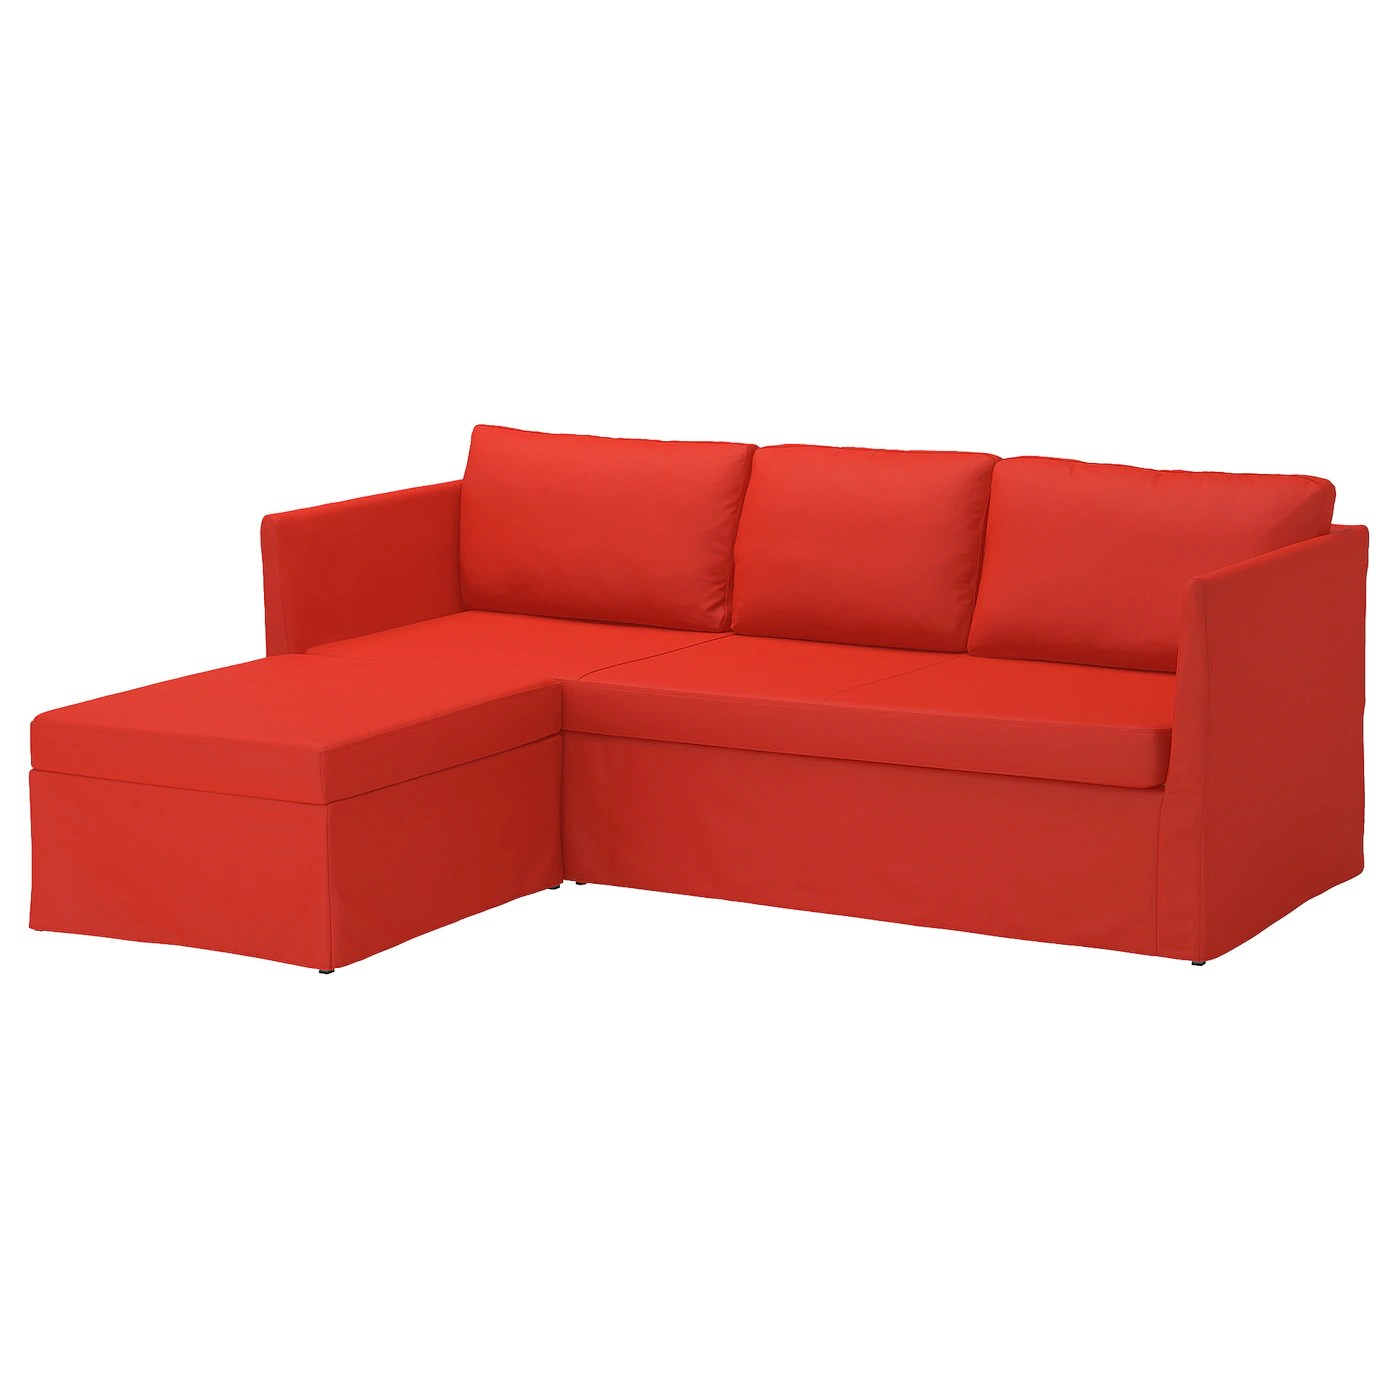 furniture village leather corner sofa bed sectional brown microfiber sofas ikea brathult 3 seat you sit comfortably thanks to the resilient foam